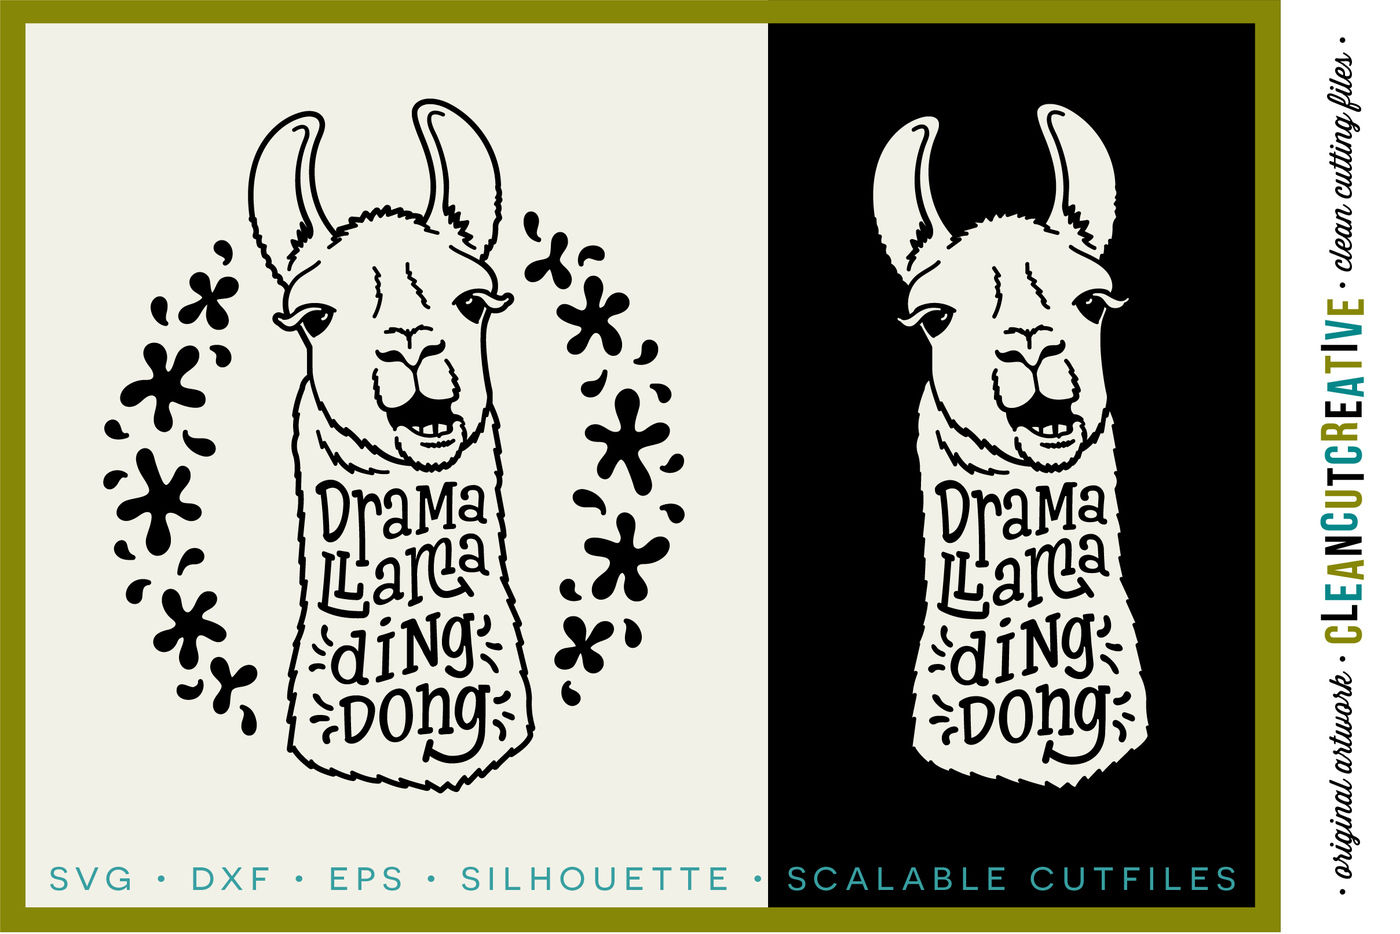 Drama Llama Ding Dong Svg Dxf Eps Png Cricut Silhouette